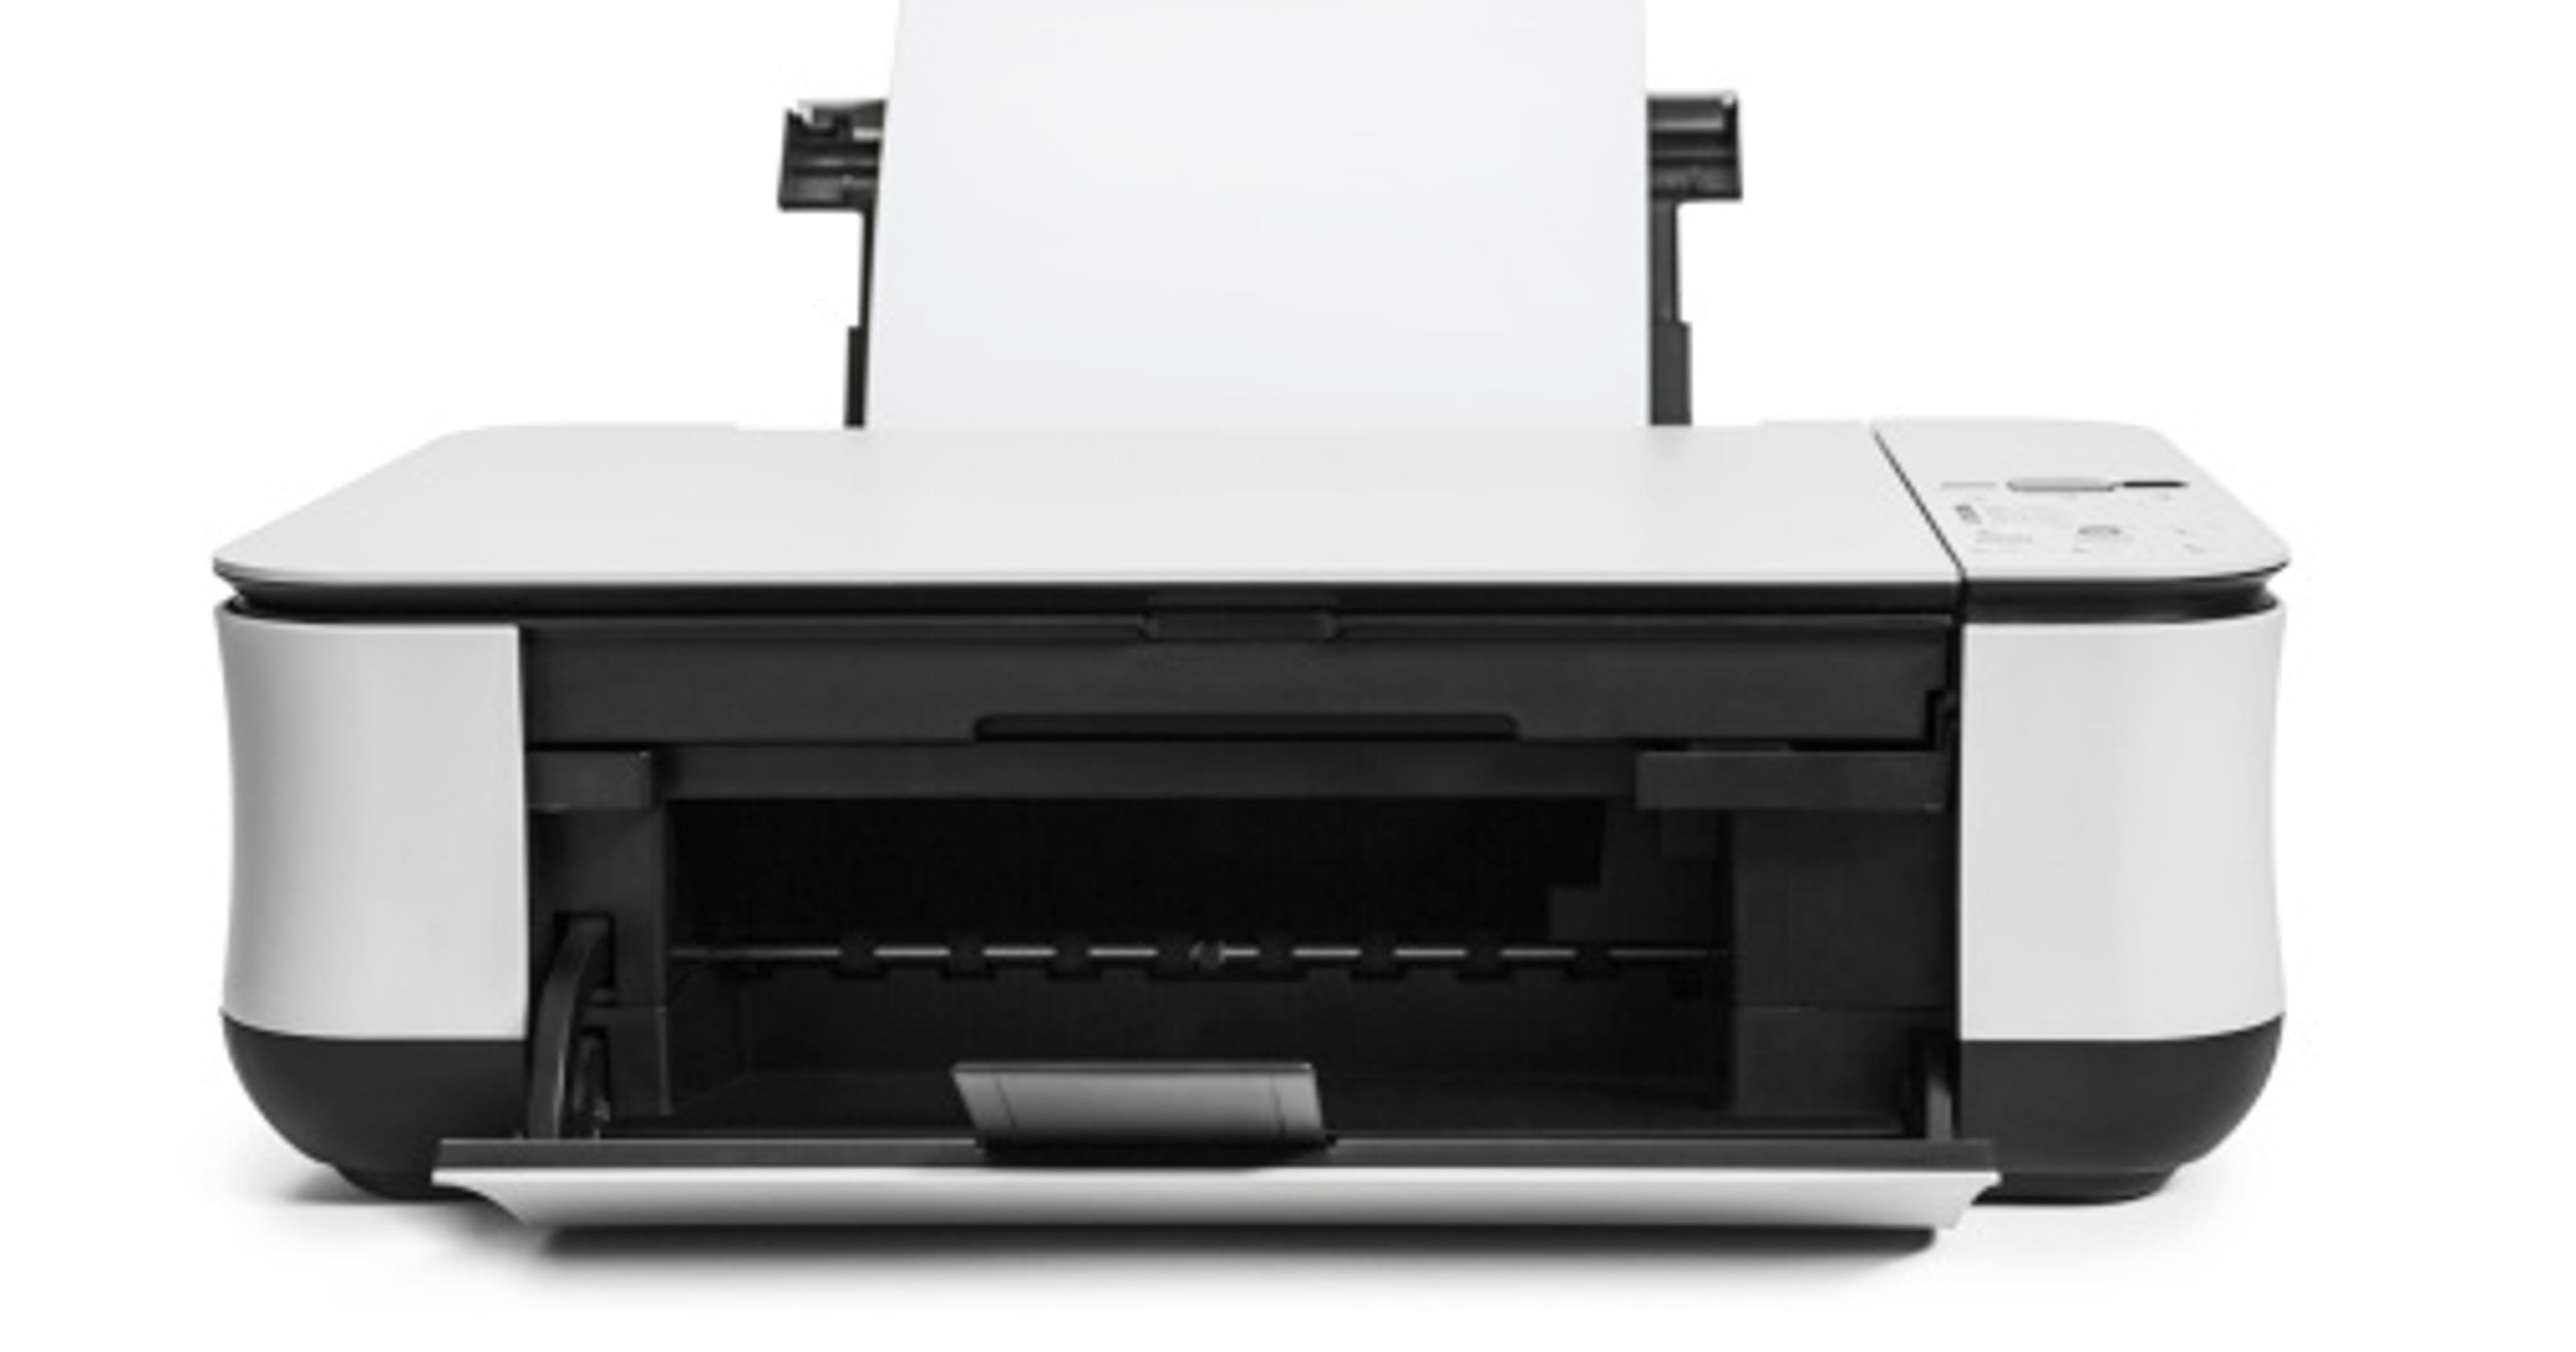 Q&A: Does a printer have memory?